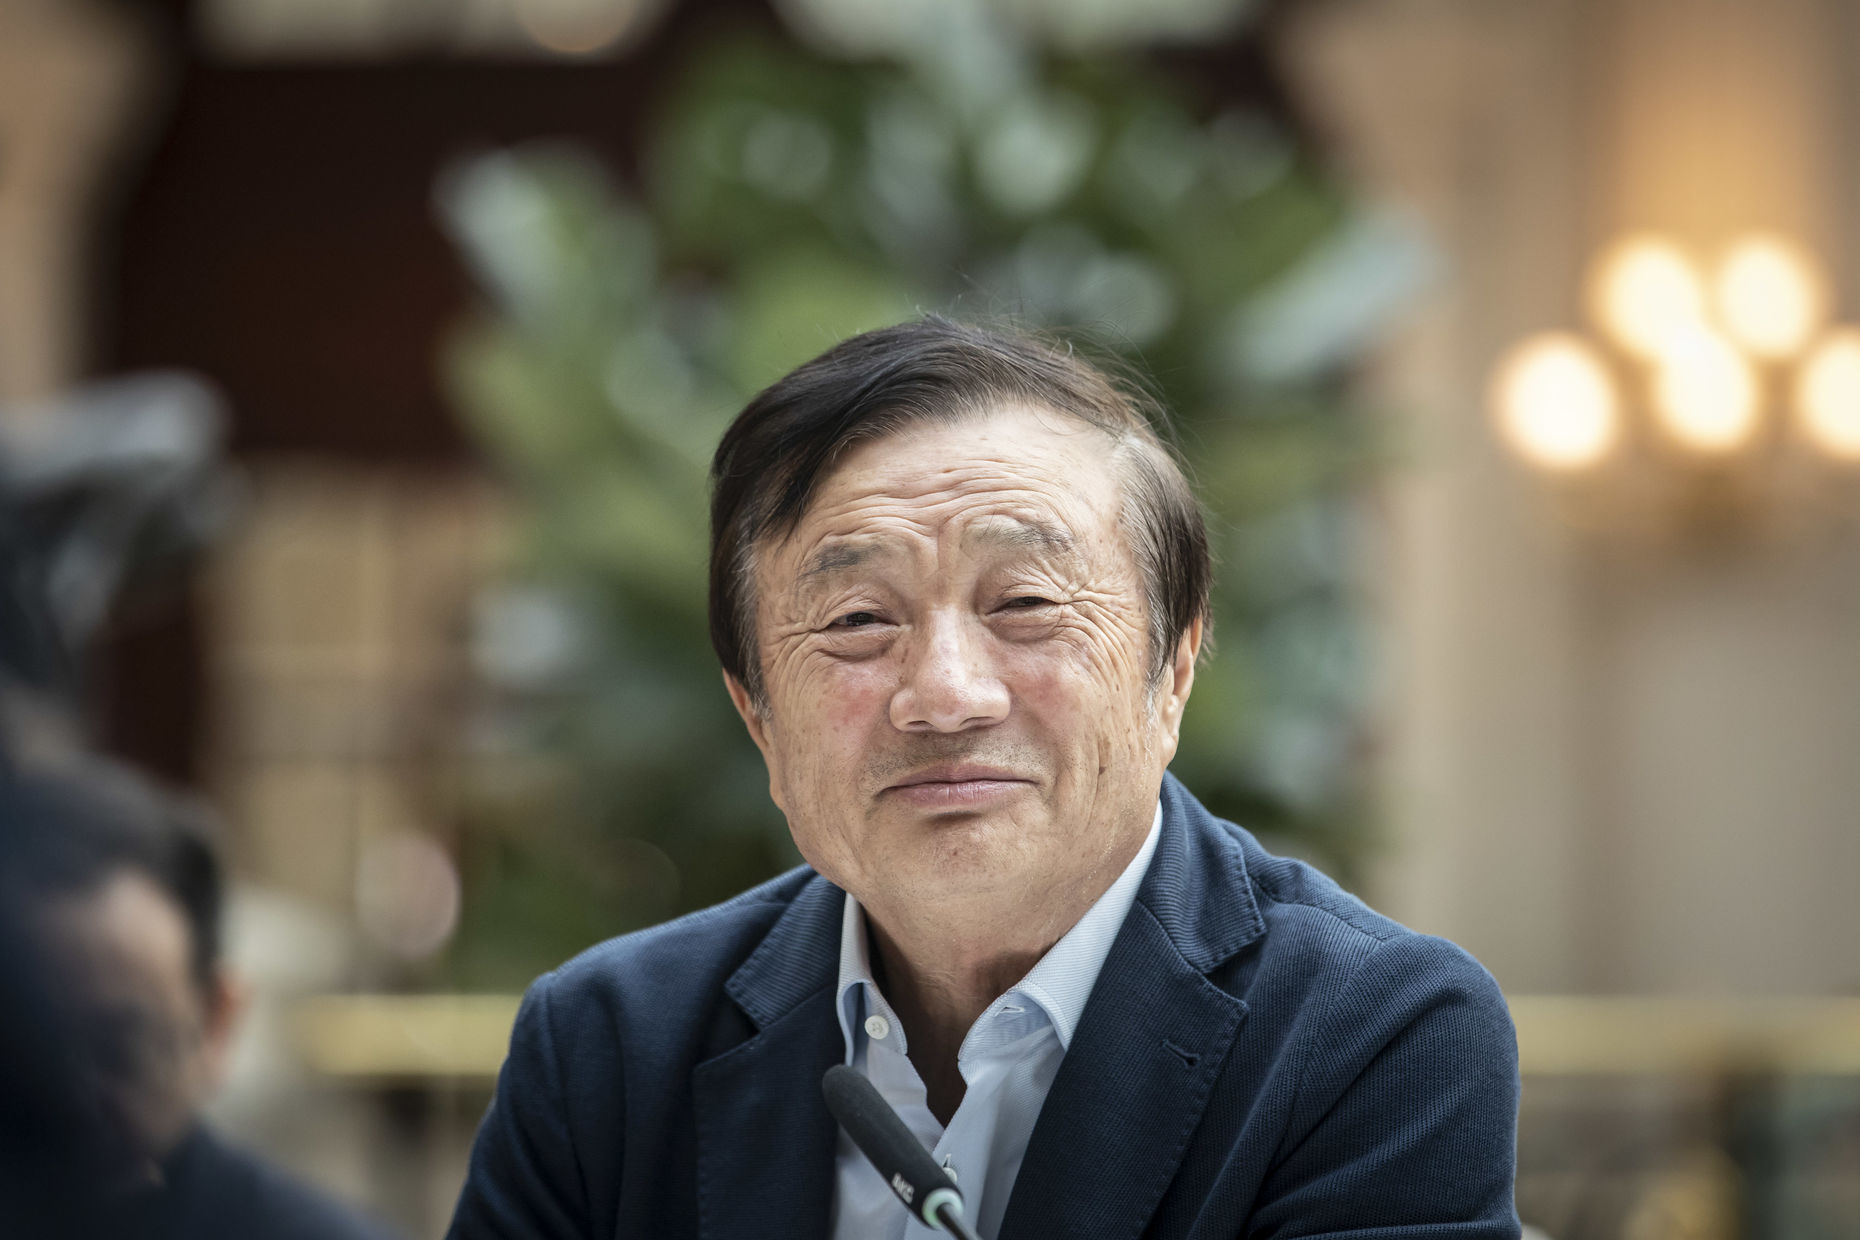 Ren Zhengfei, founder and chief executive officer of Huawei Technologies. Photo by Bloomberg.